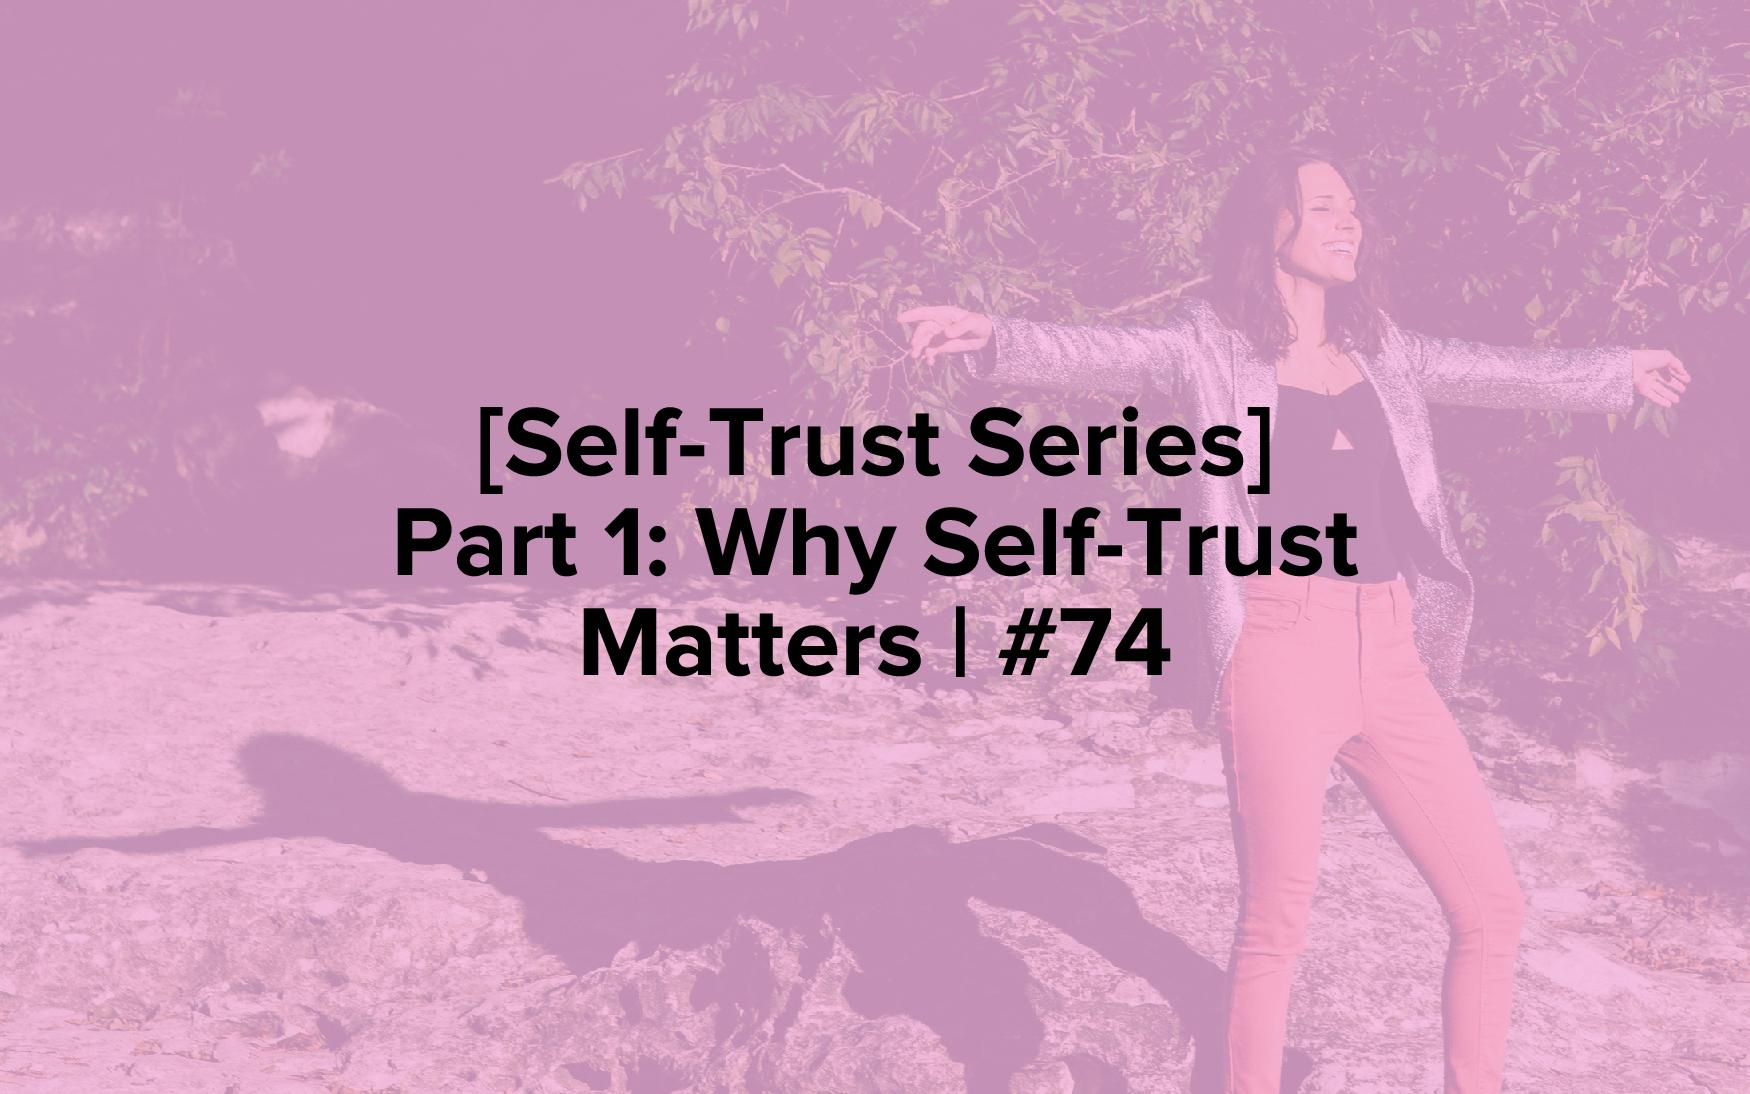 """The words, """"[Self-Trust Series] Part 1: Why Self-Trust Matters 